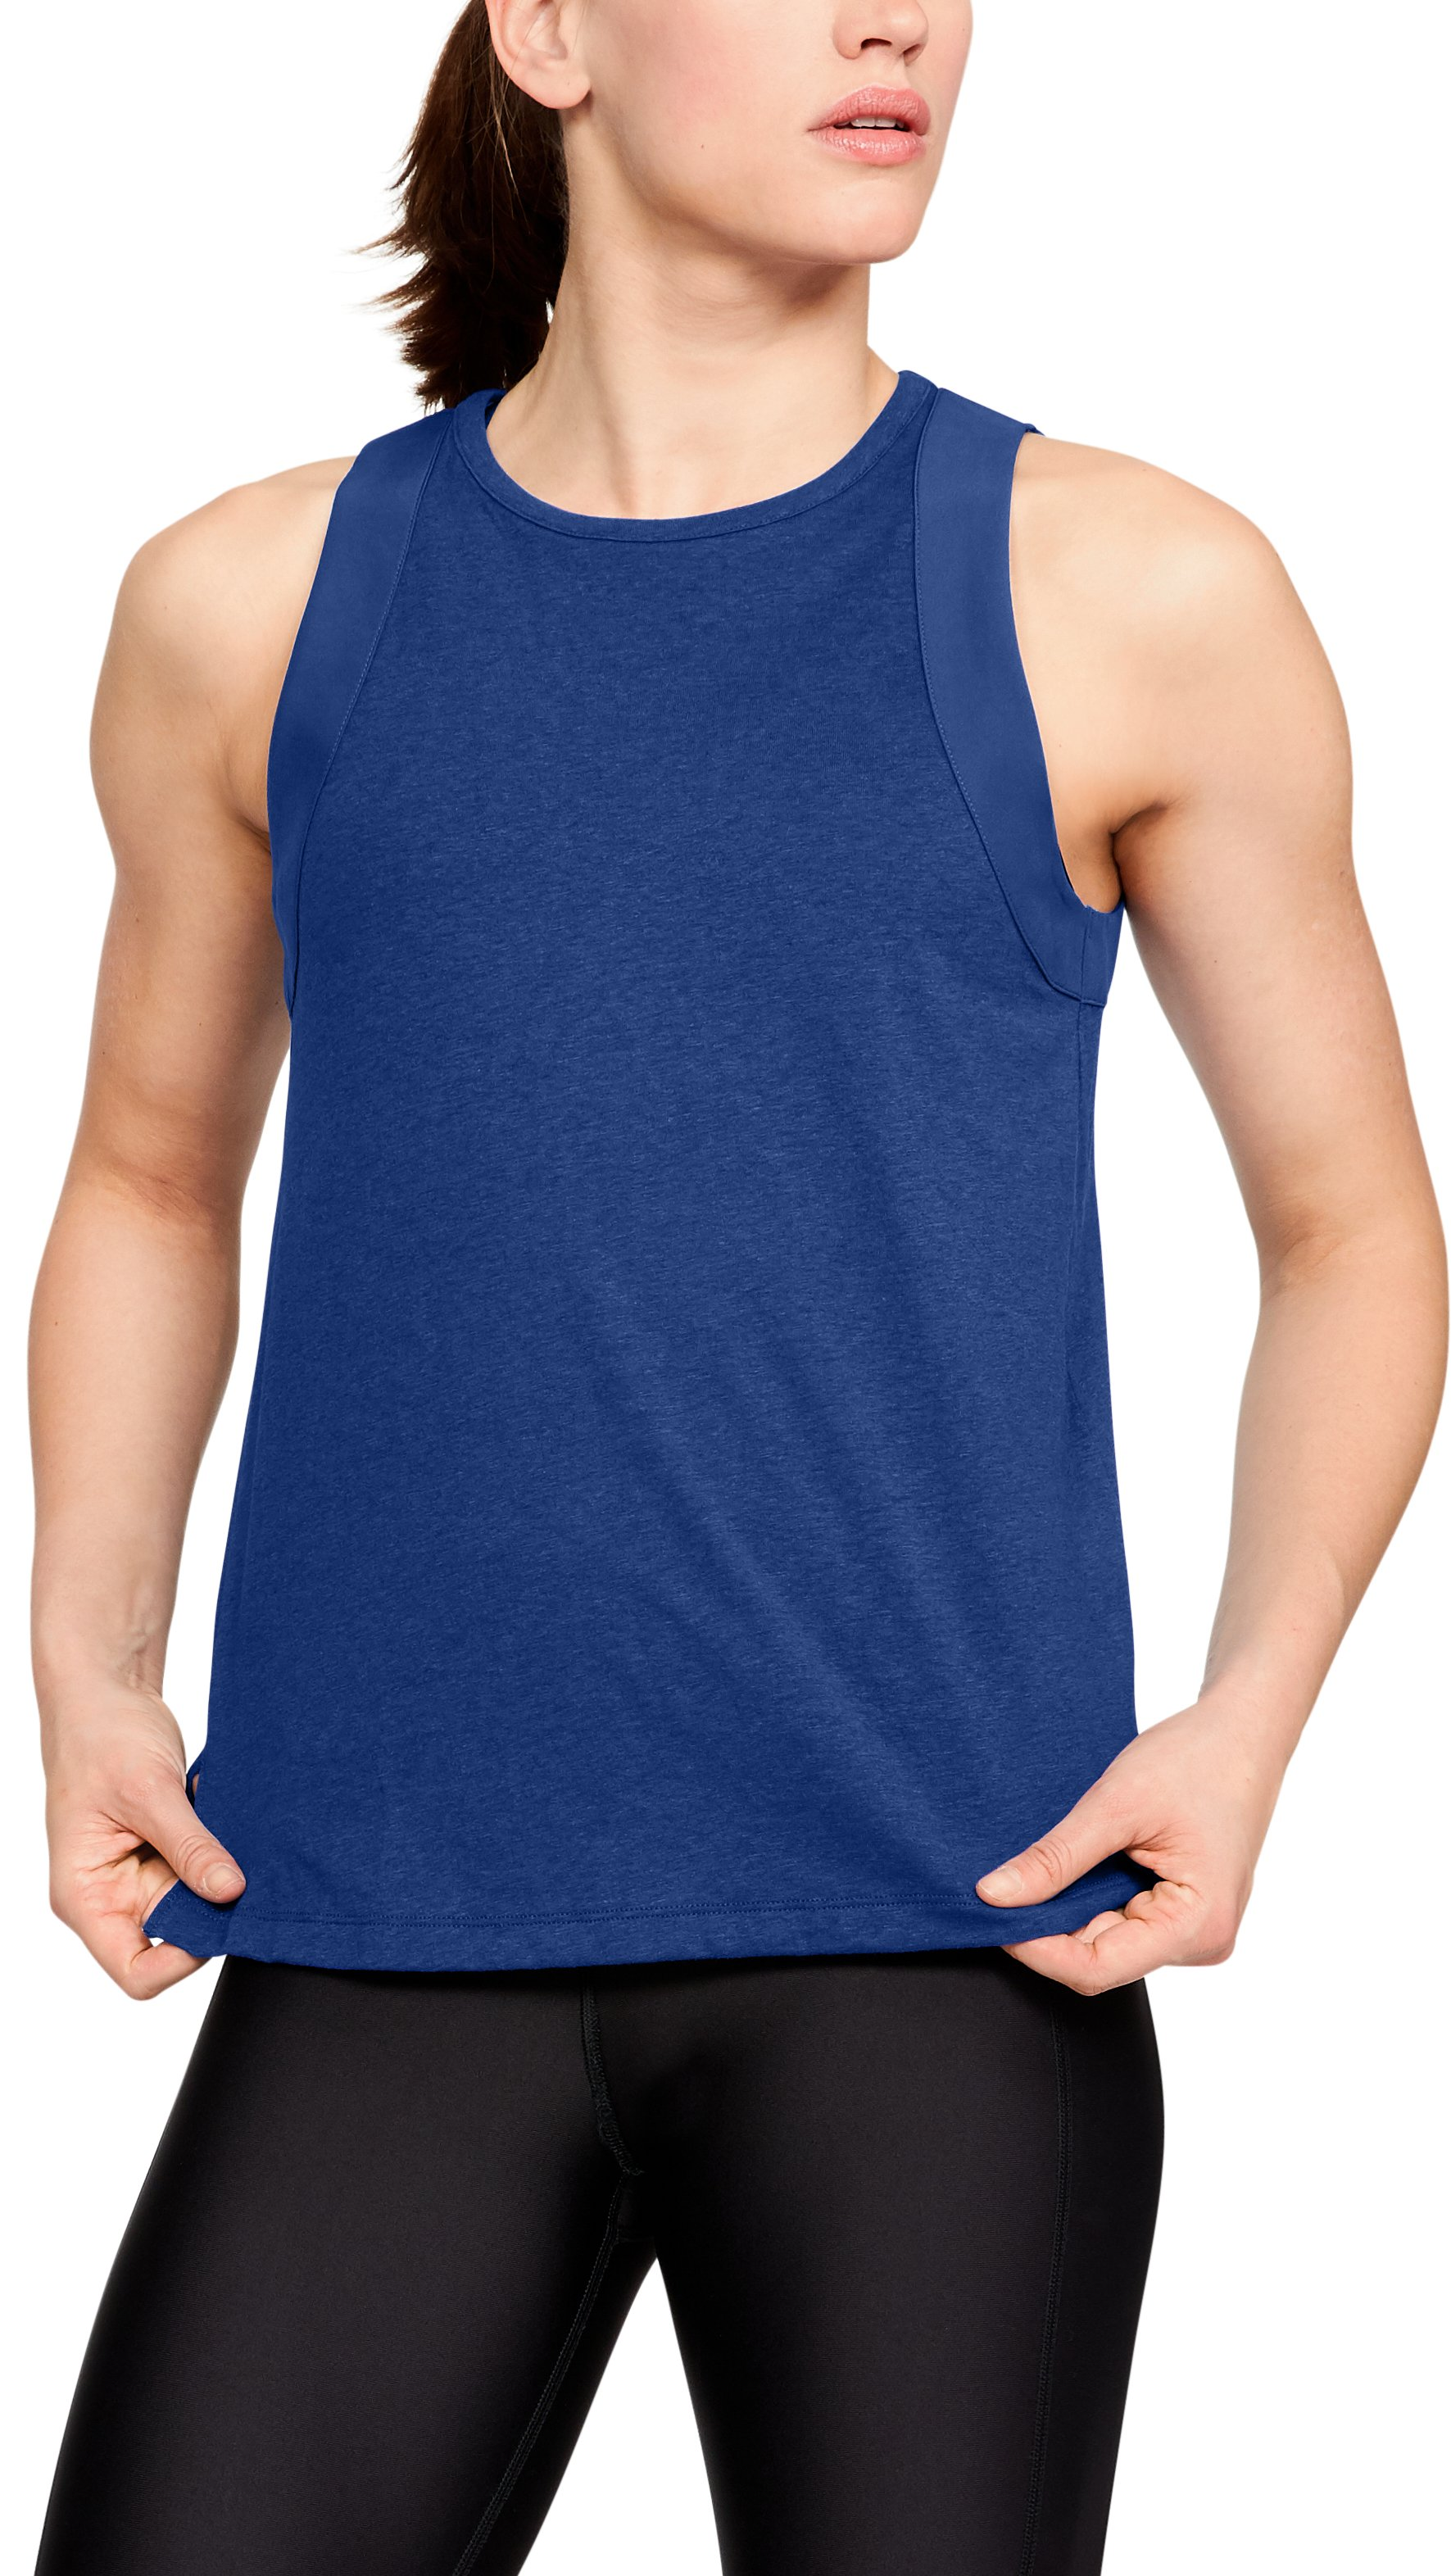 tri blends Women's UA Tri-Blend Cutout Tank Great top!...Definitely runs larger, which is sometimes a good thing....Cute top, very light, but the cut on the back has a weird look while wearing it.